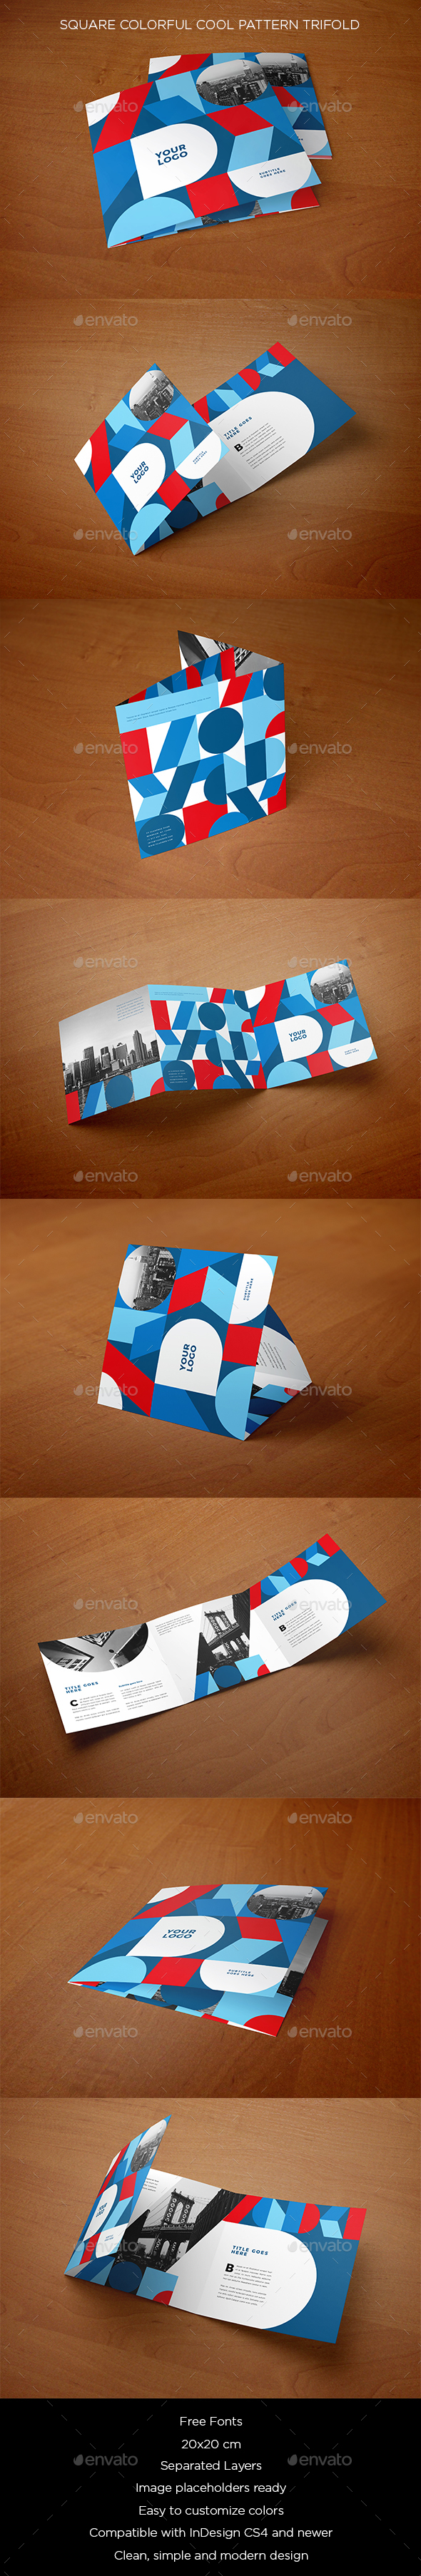 Square Colorful Cool Pattern Trifold - Brochures Print Templates